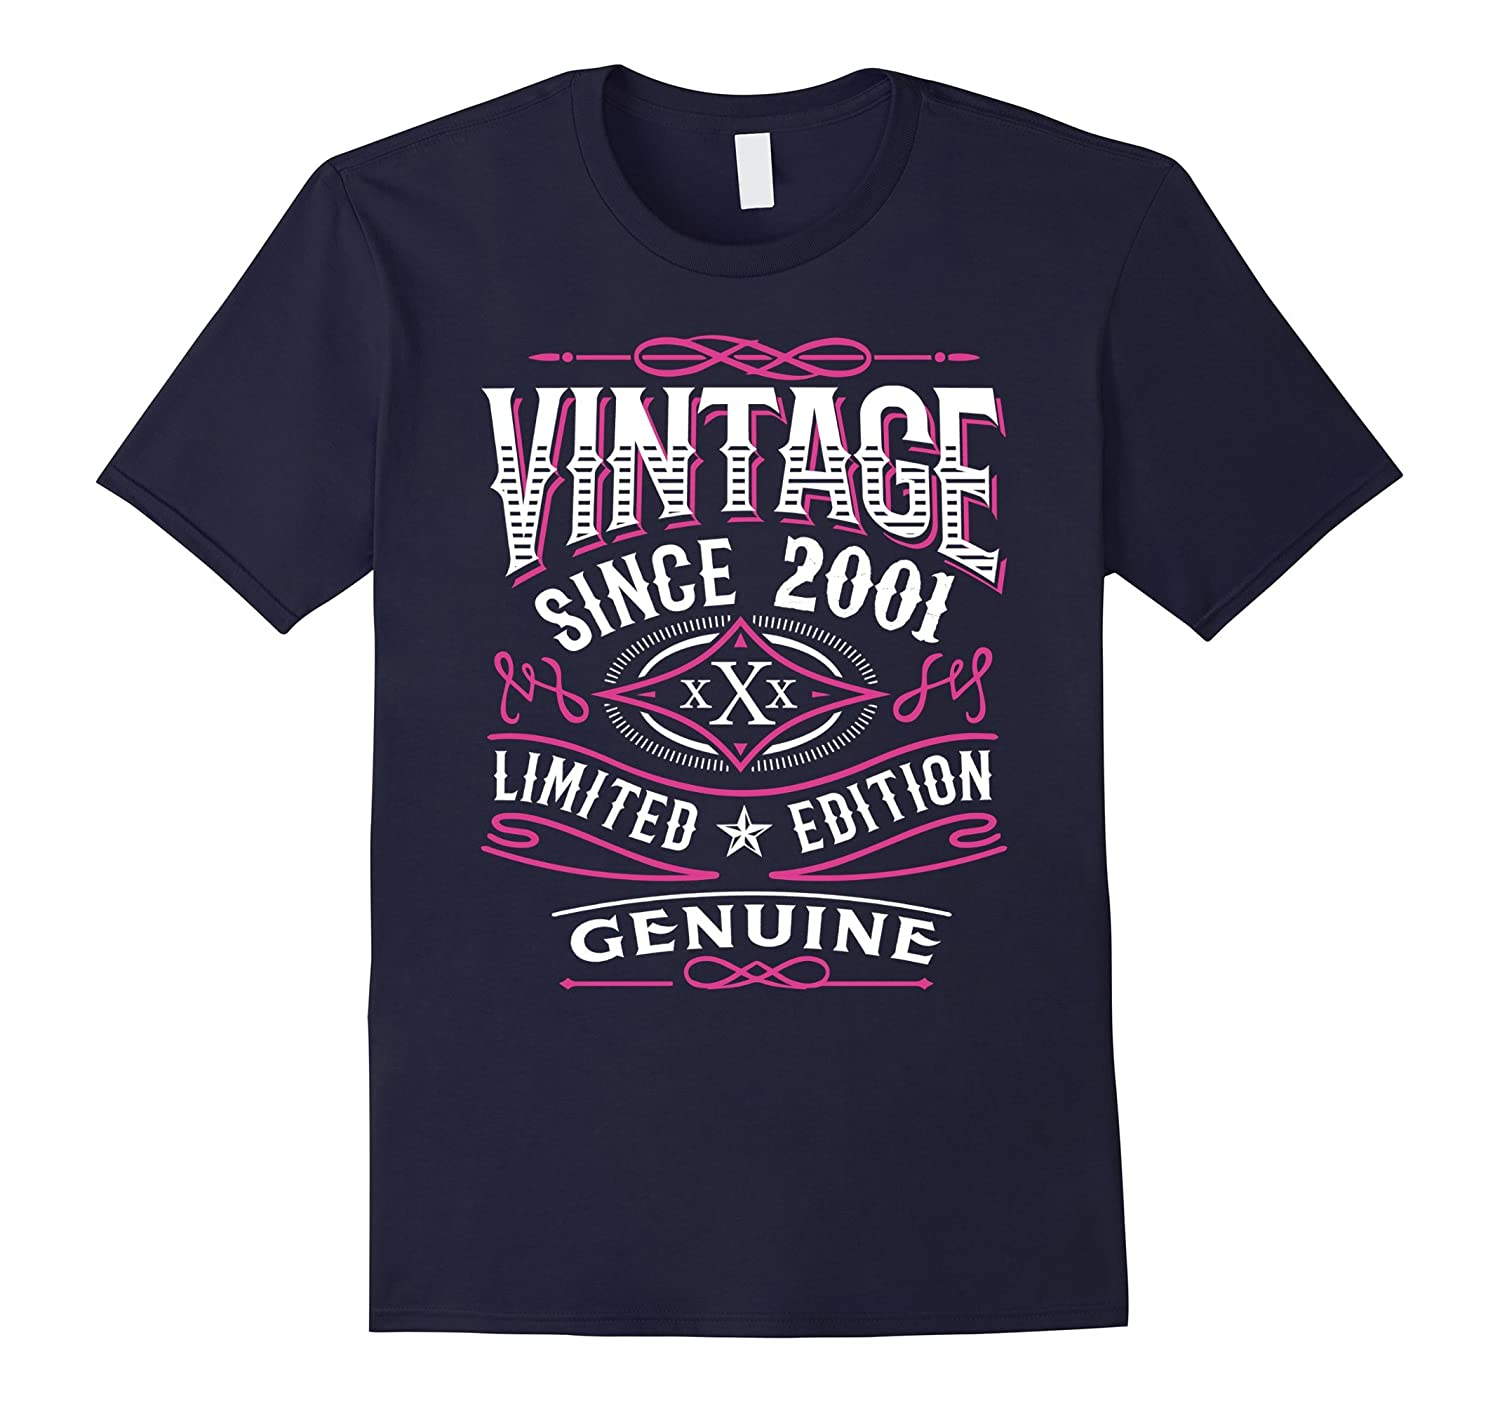 16th Birthday Gift T-Shirt Vintage 2001 - 16 Years Old Shirt-PL